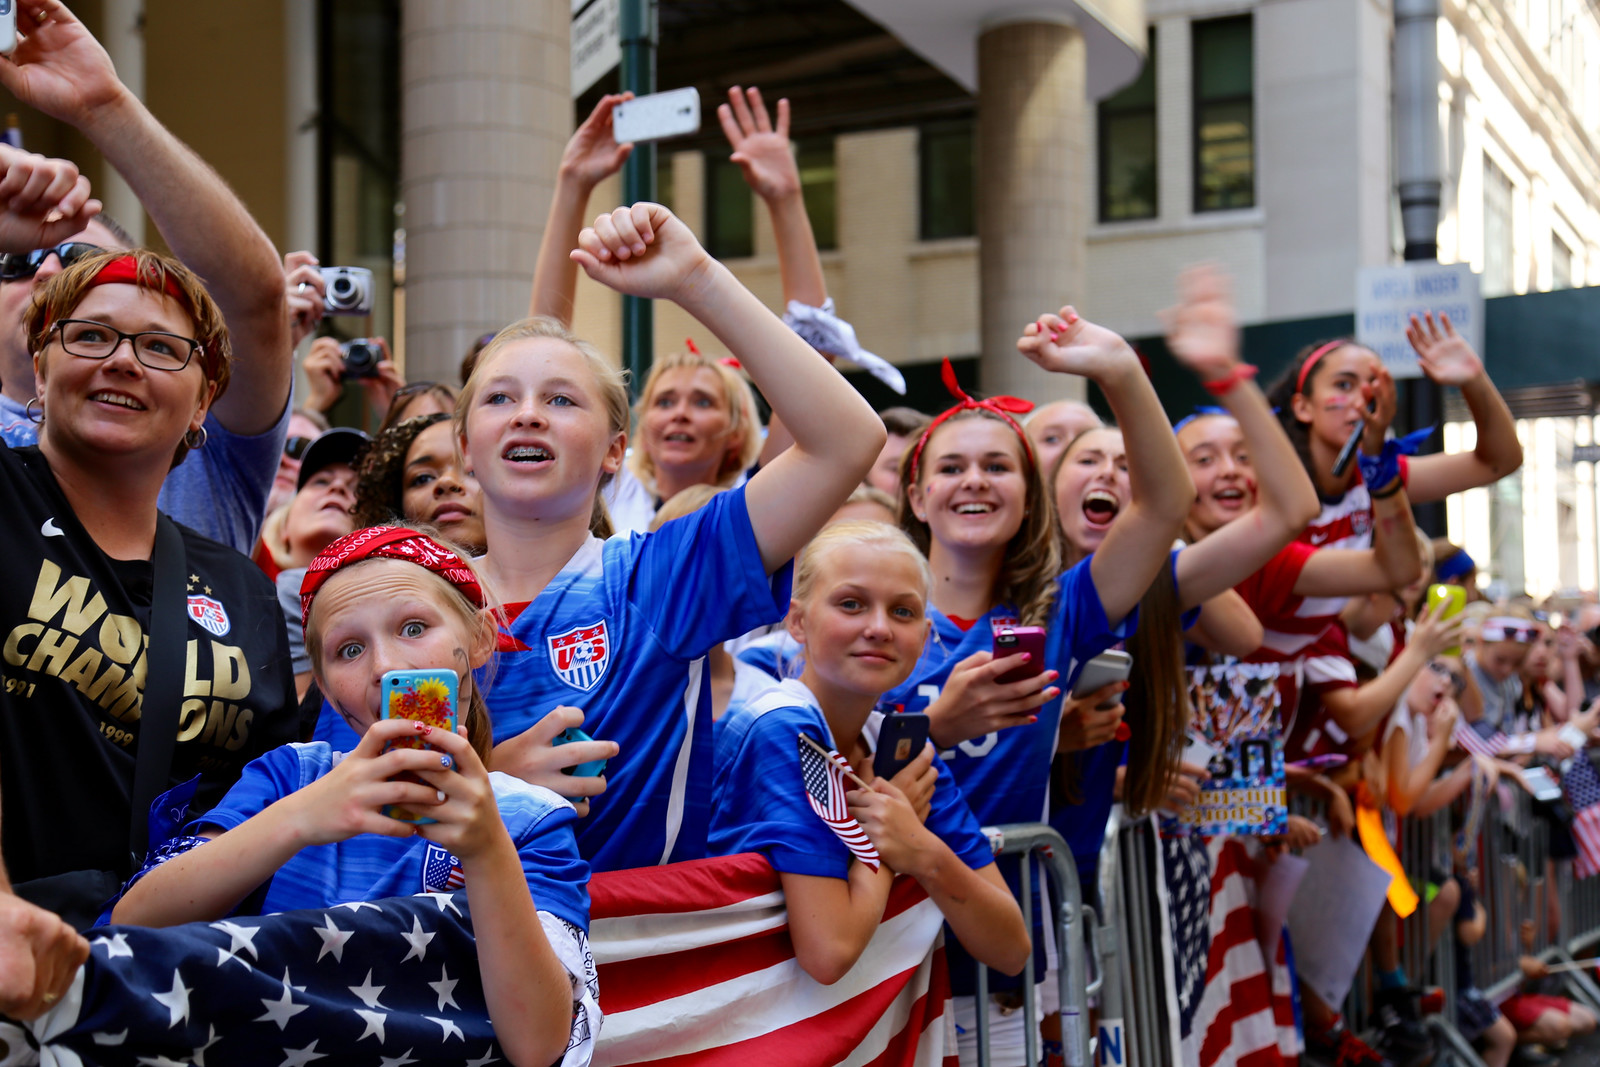 US Women's Soccer World Champions Ticker Tape Parade | by NYCDOT